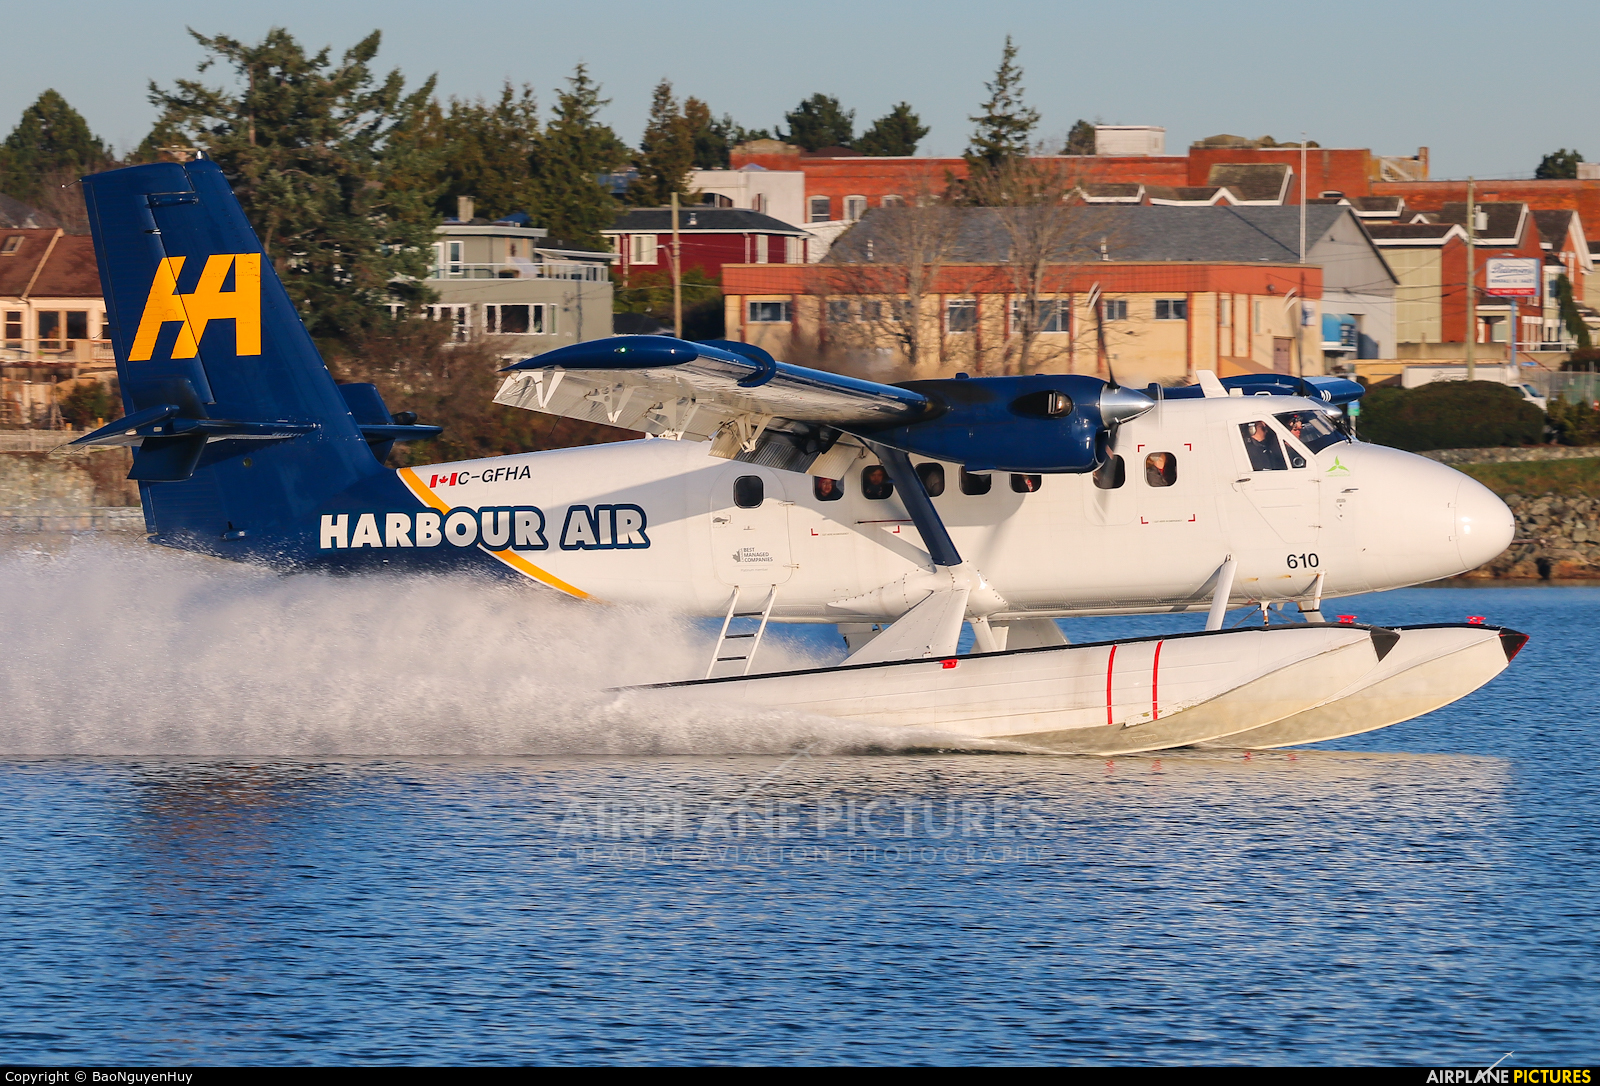 Harbour Air C-GFHA aircraft at Victoria Harbour, BC